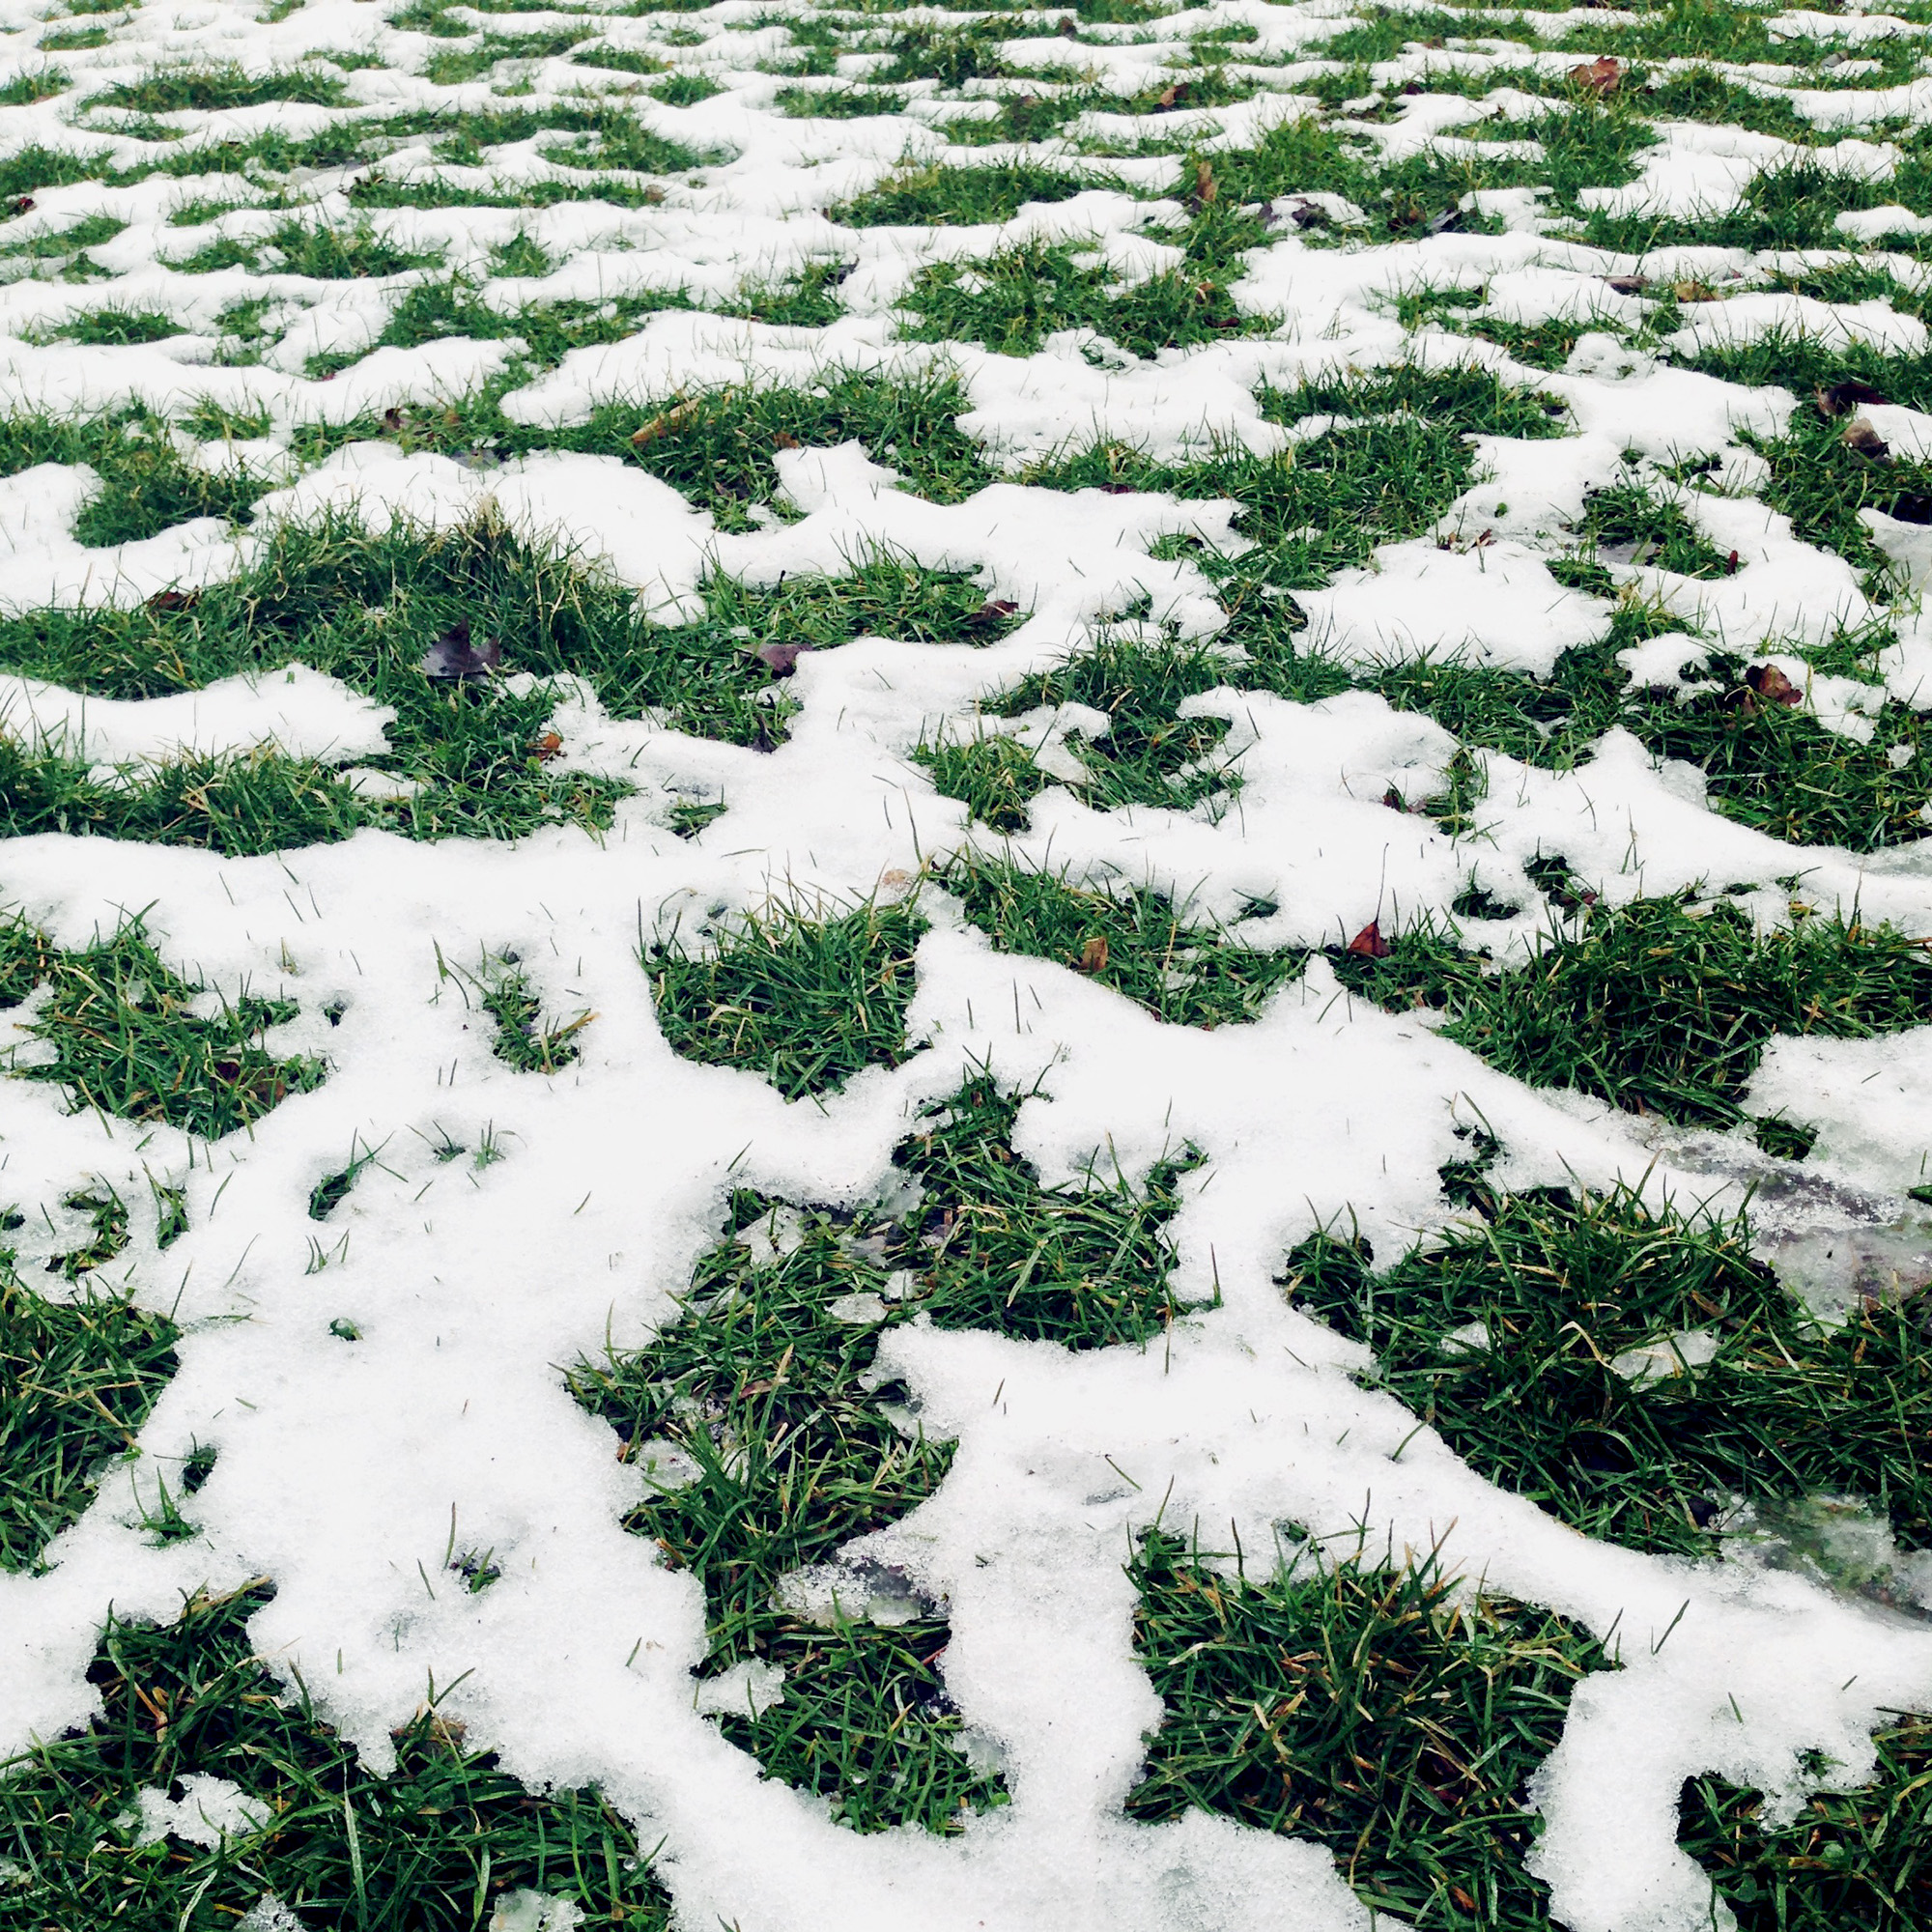 Grass and snow, Welles Park, Chicago Illinois